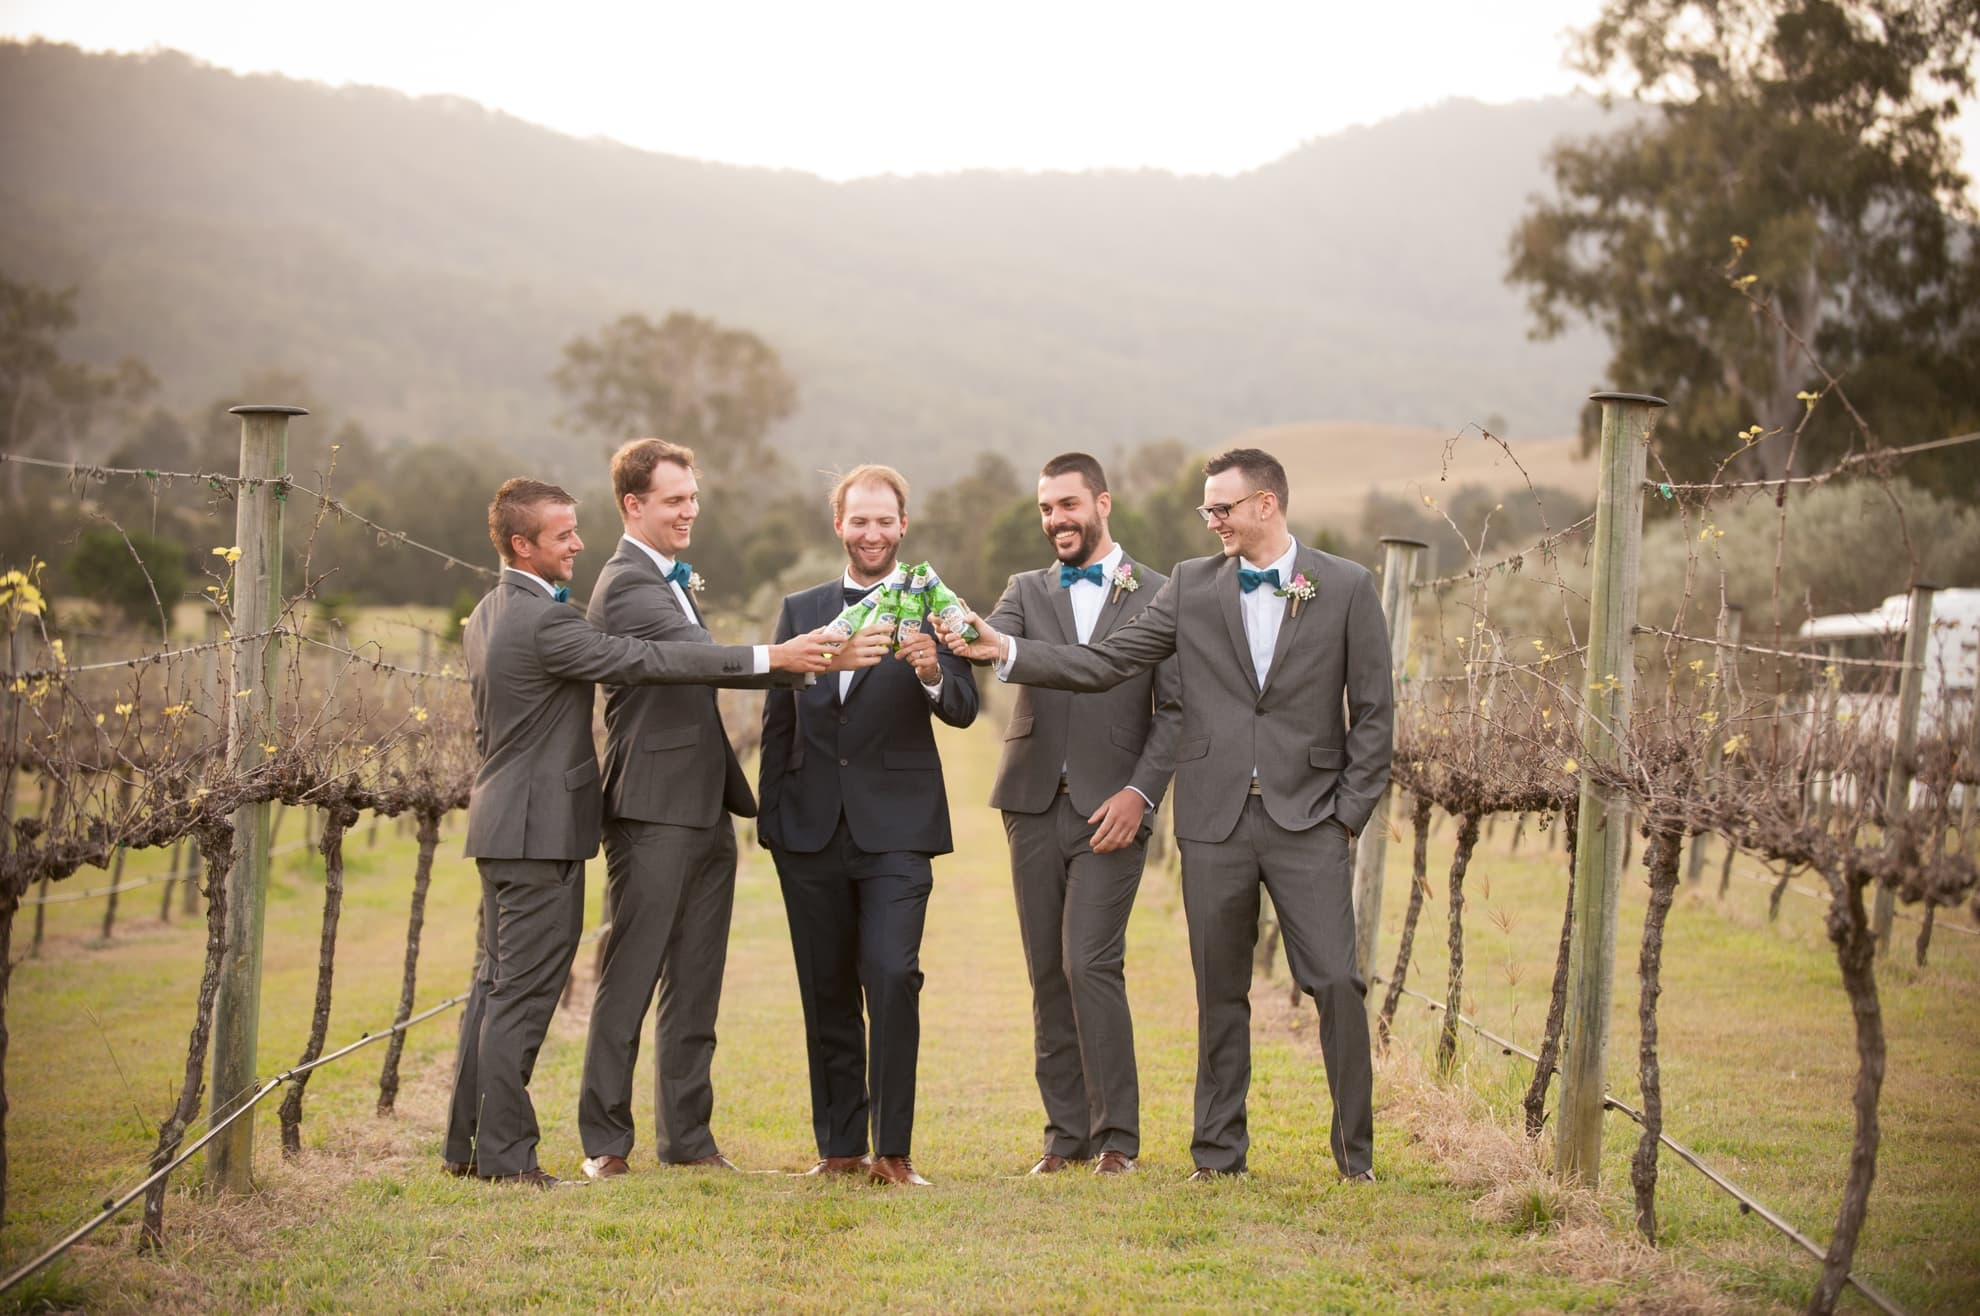 groom-and-his-groomsmen-having-a-cheers-with-the-beer-bottles-laughing